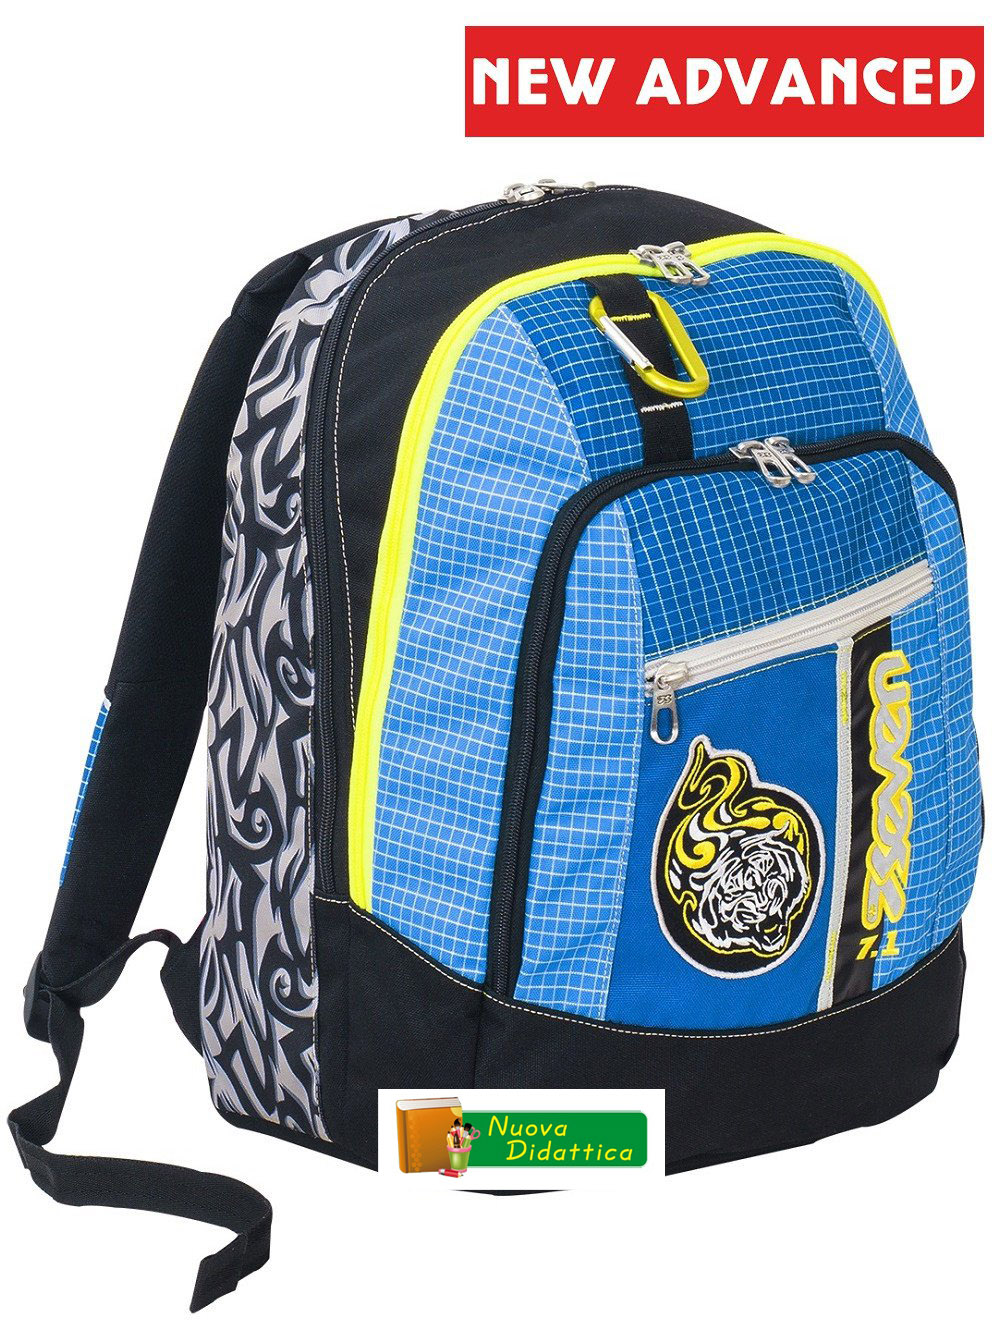 ZAINO SEVEN ADVANCED TRIBAL BOY BLU